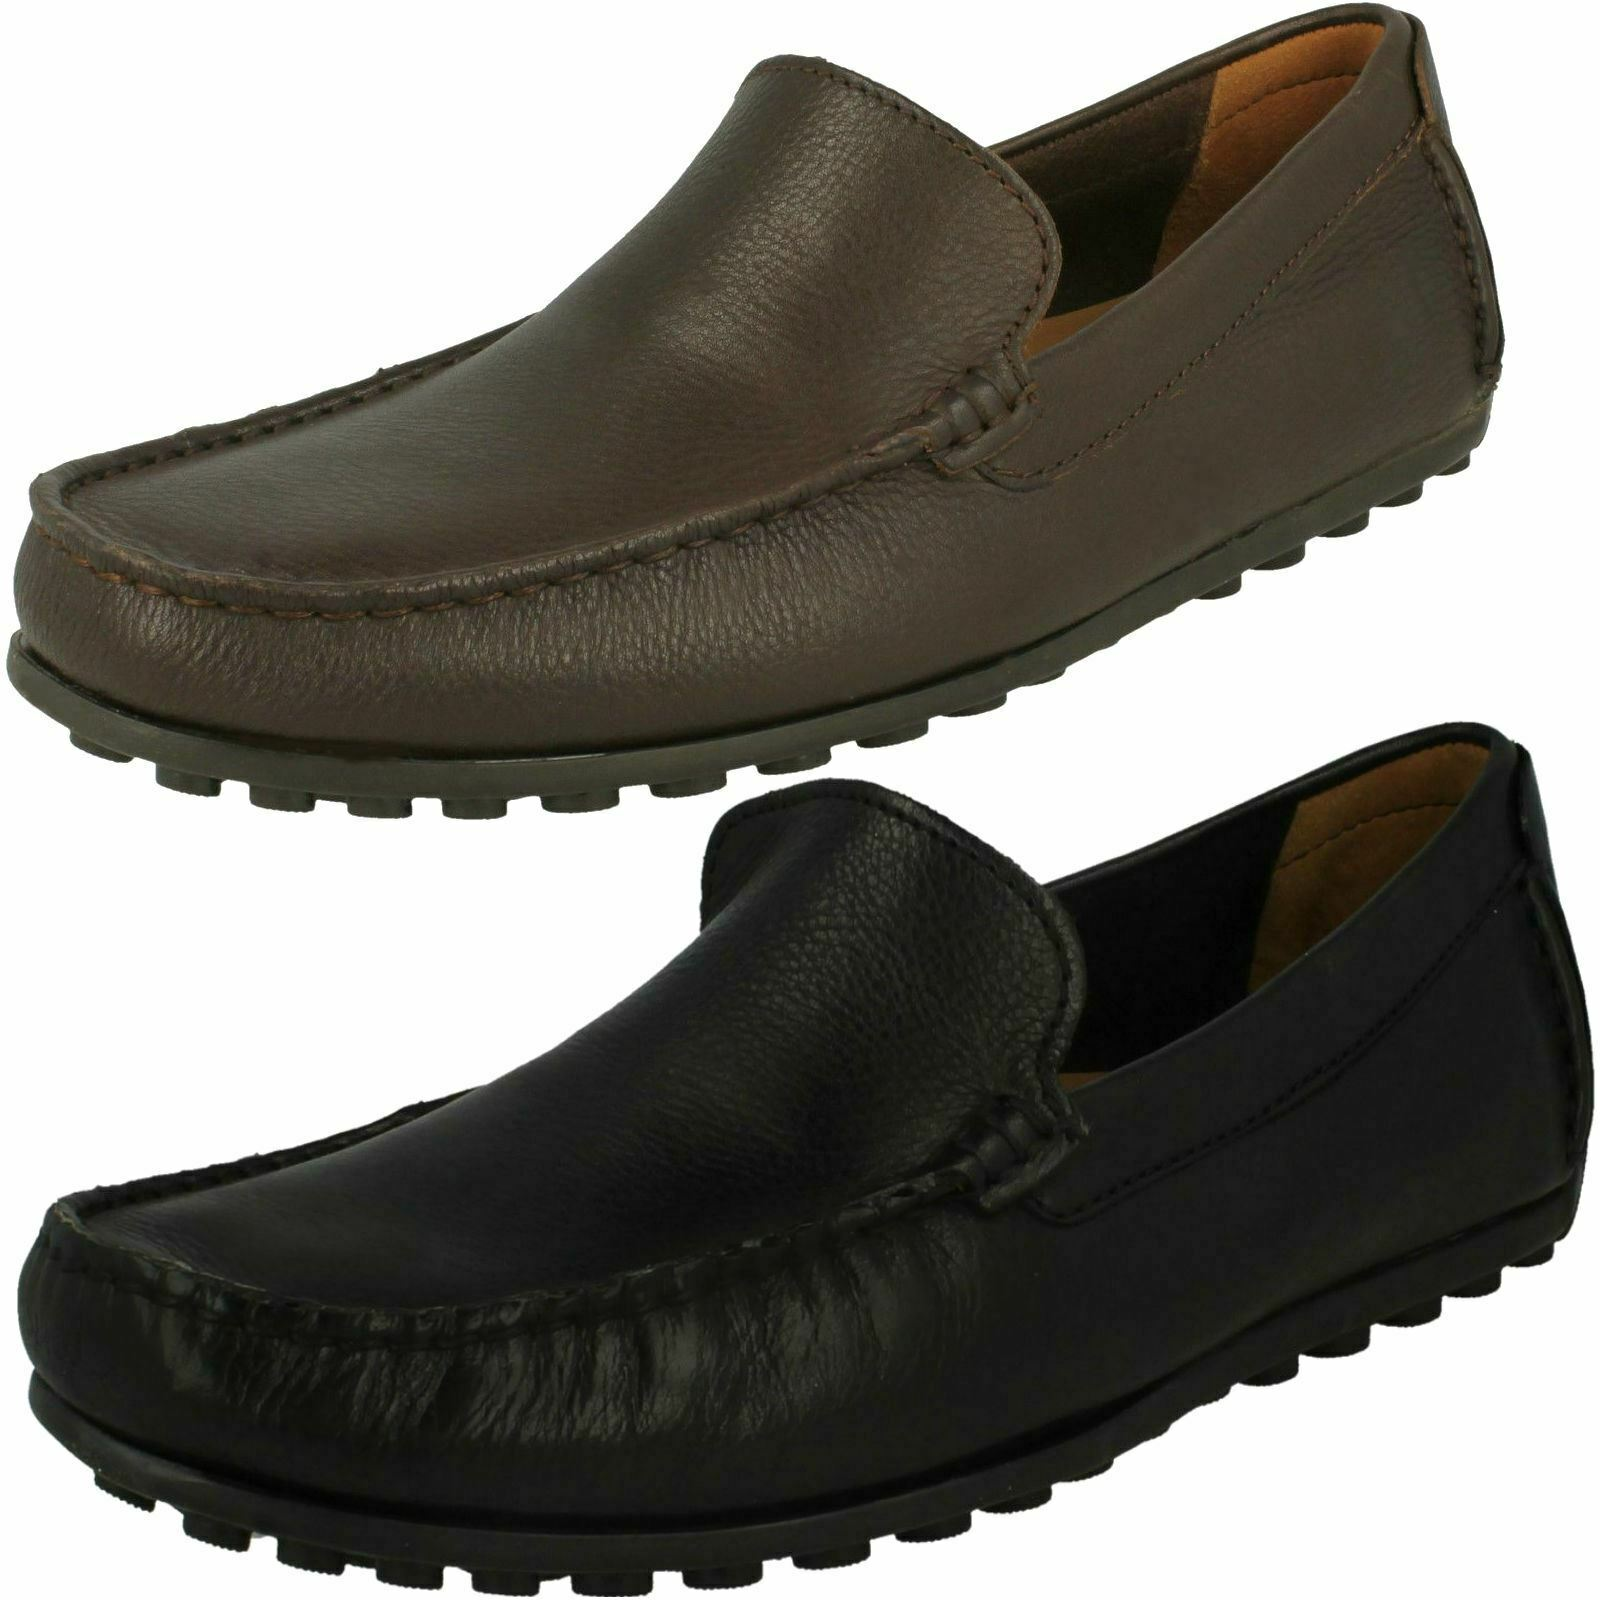 Clarks da men Hamilton Gratis Infilare Party Mocassini shoes Comode